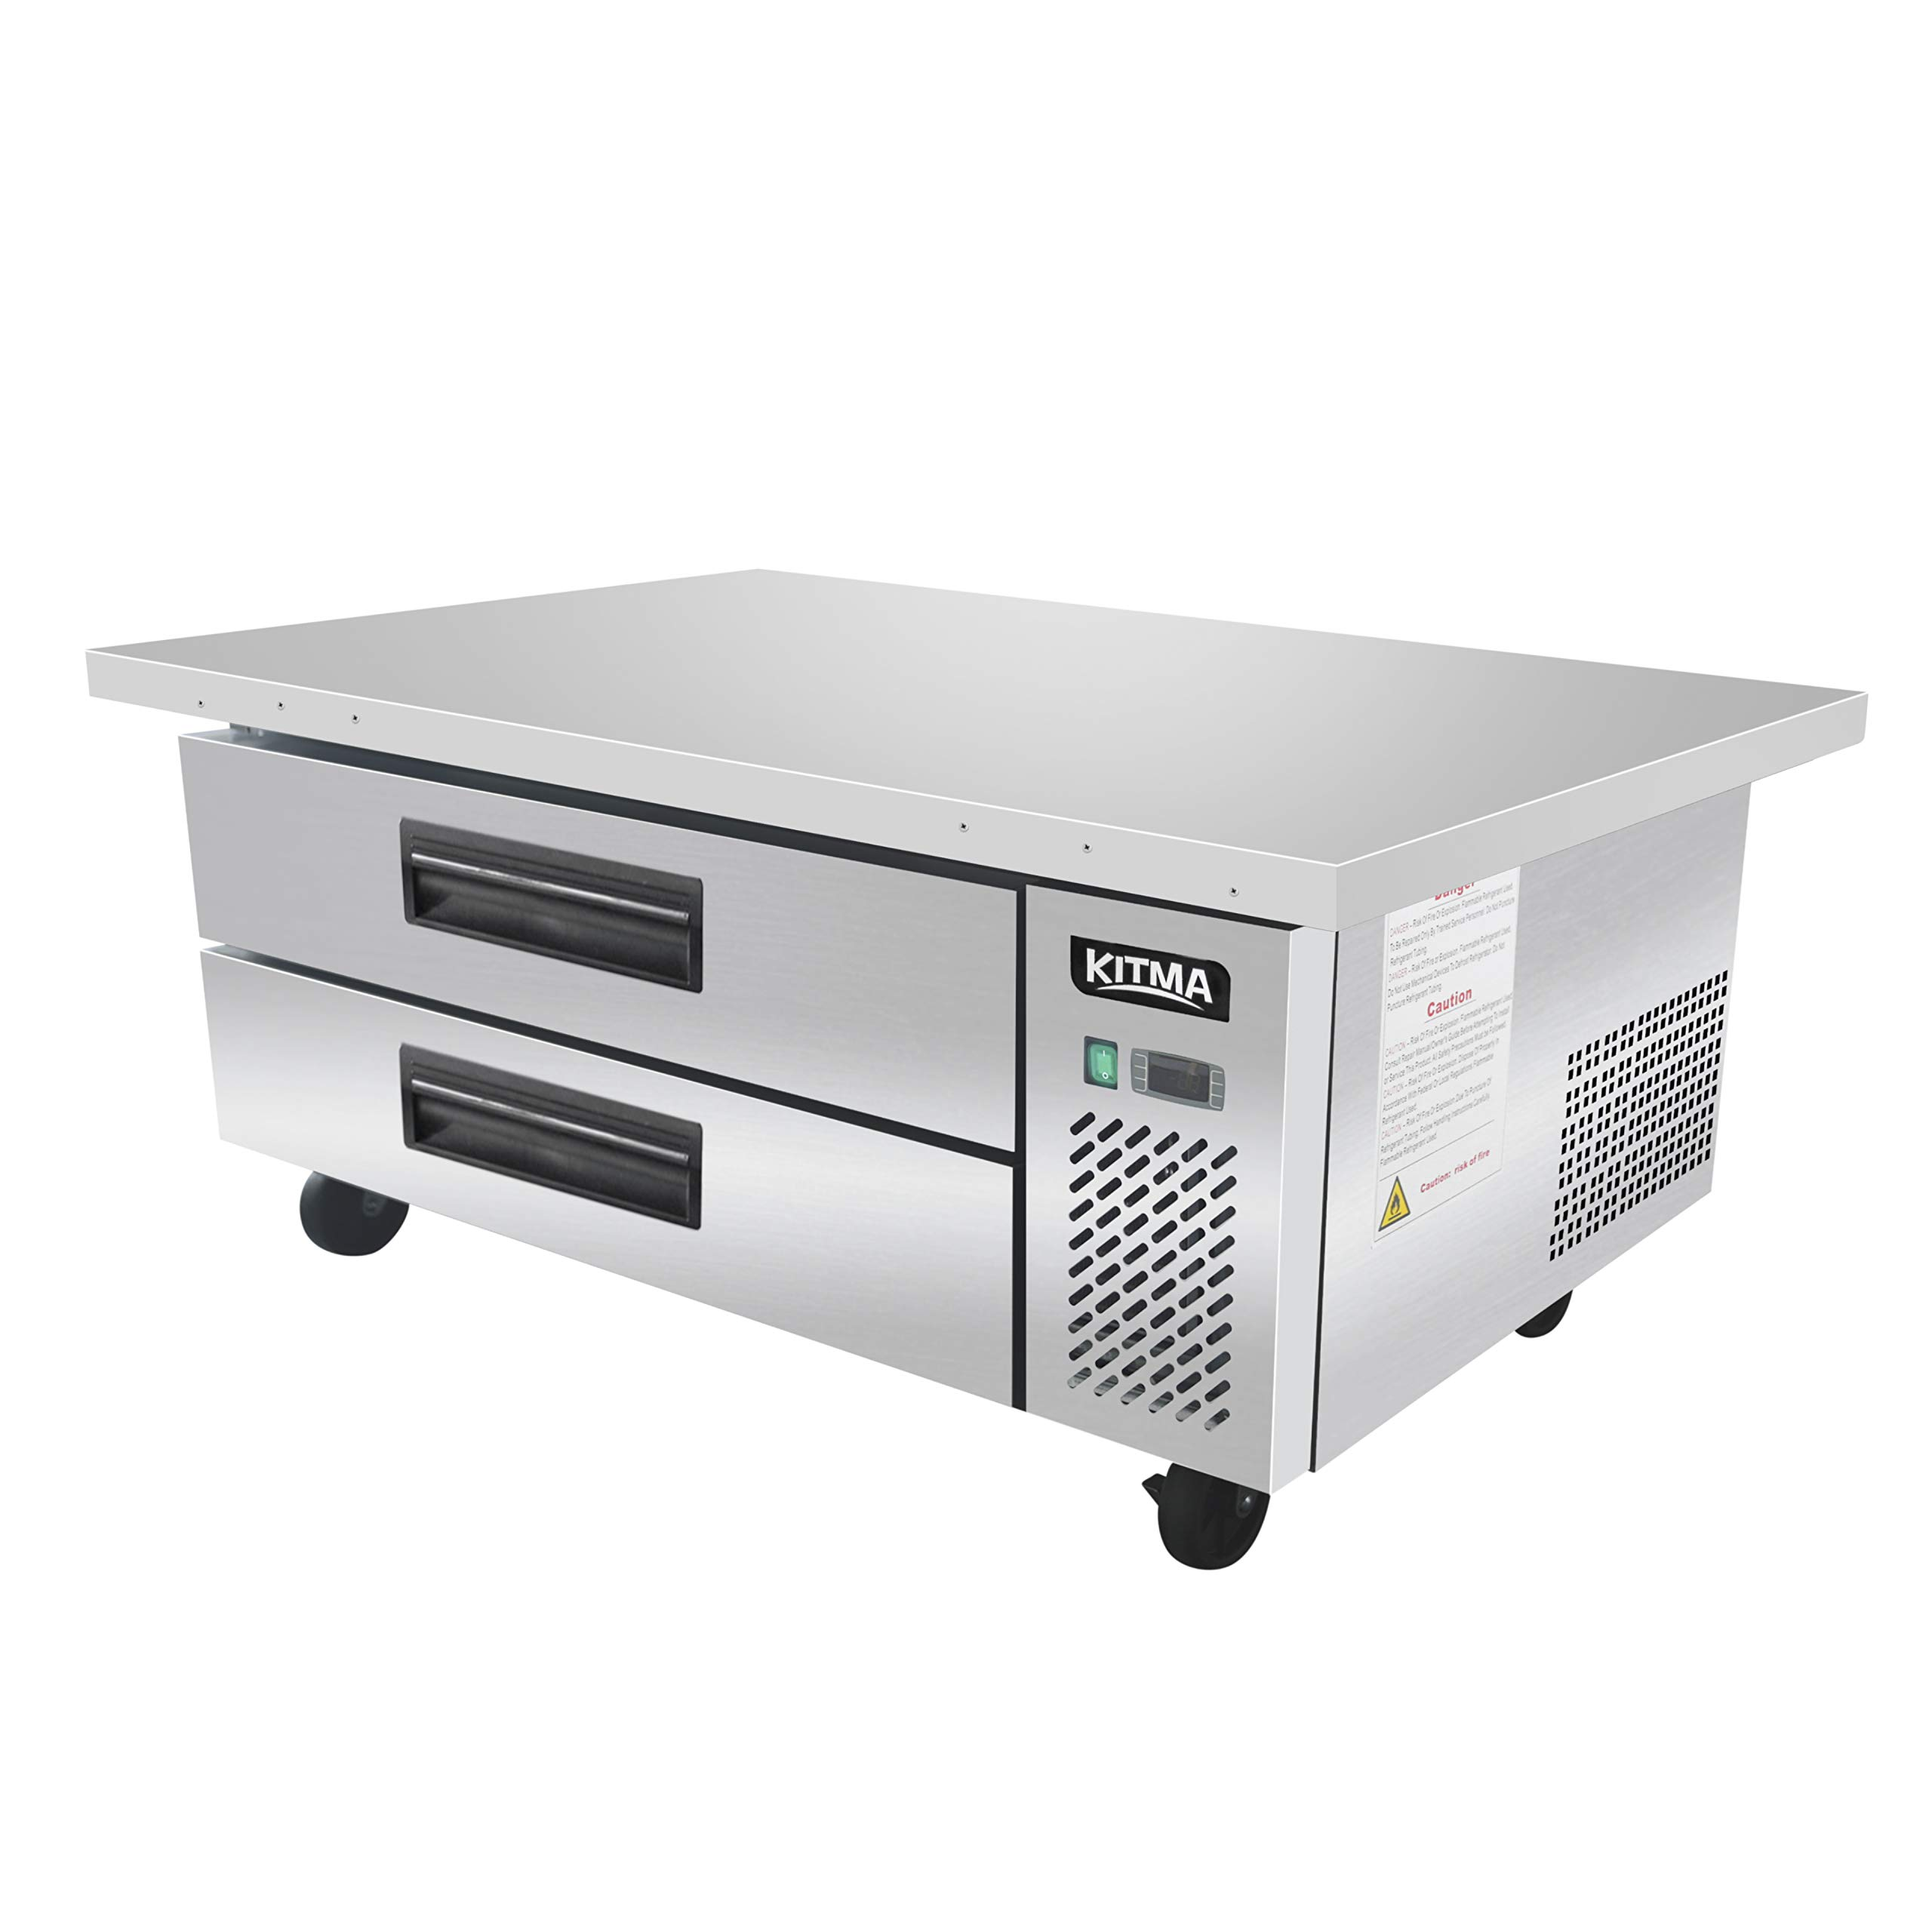 Restaurant Equipment Stand Drawered Refrigerator kitchen equipment with Drawers KITMA Stainless Steel Commercial Counter 10.4 Cu.Ft 33℉-38℉ 60 Inches Refrigerated Chef Base